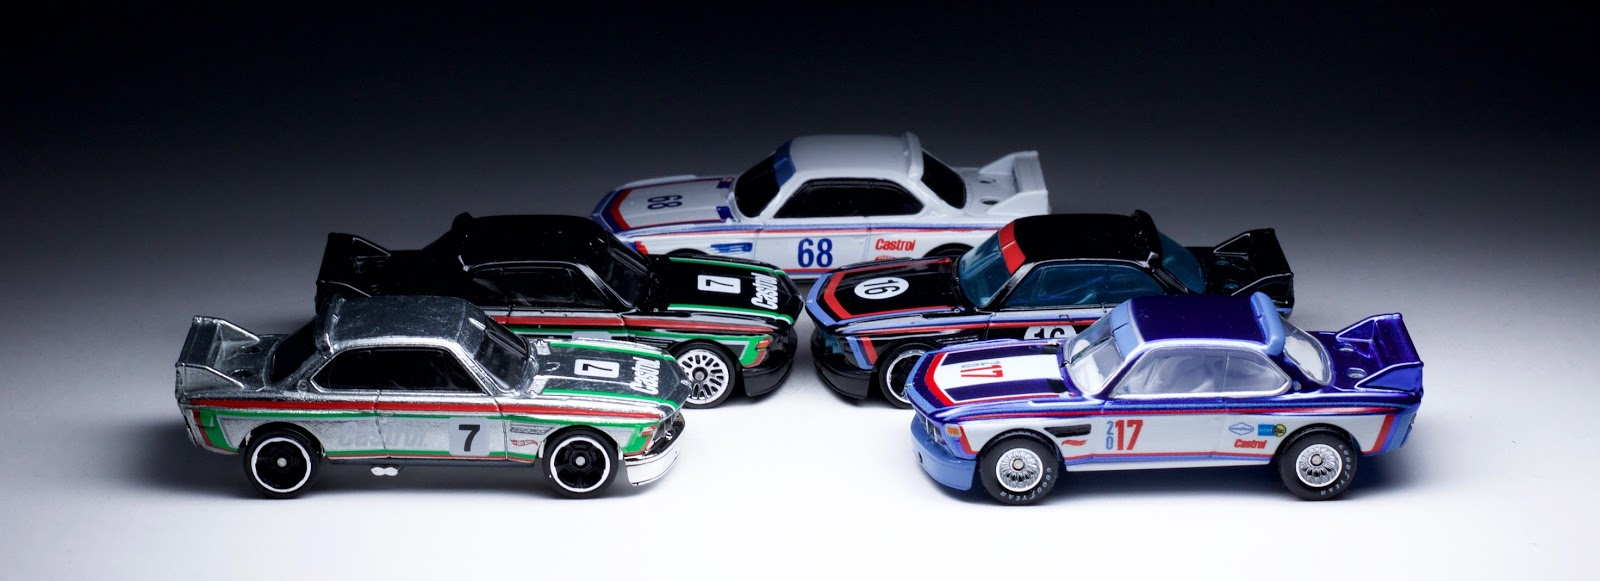 All Hot Wheels Bmw Csl Race Car Releases Ranked The